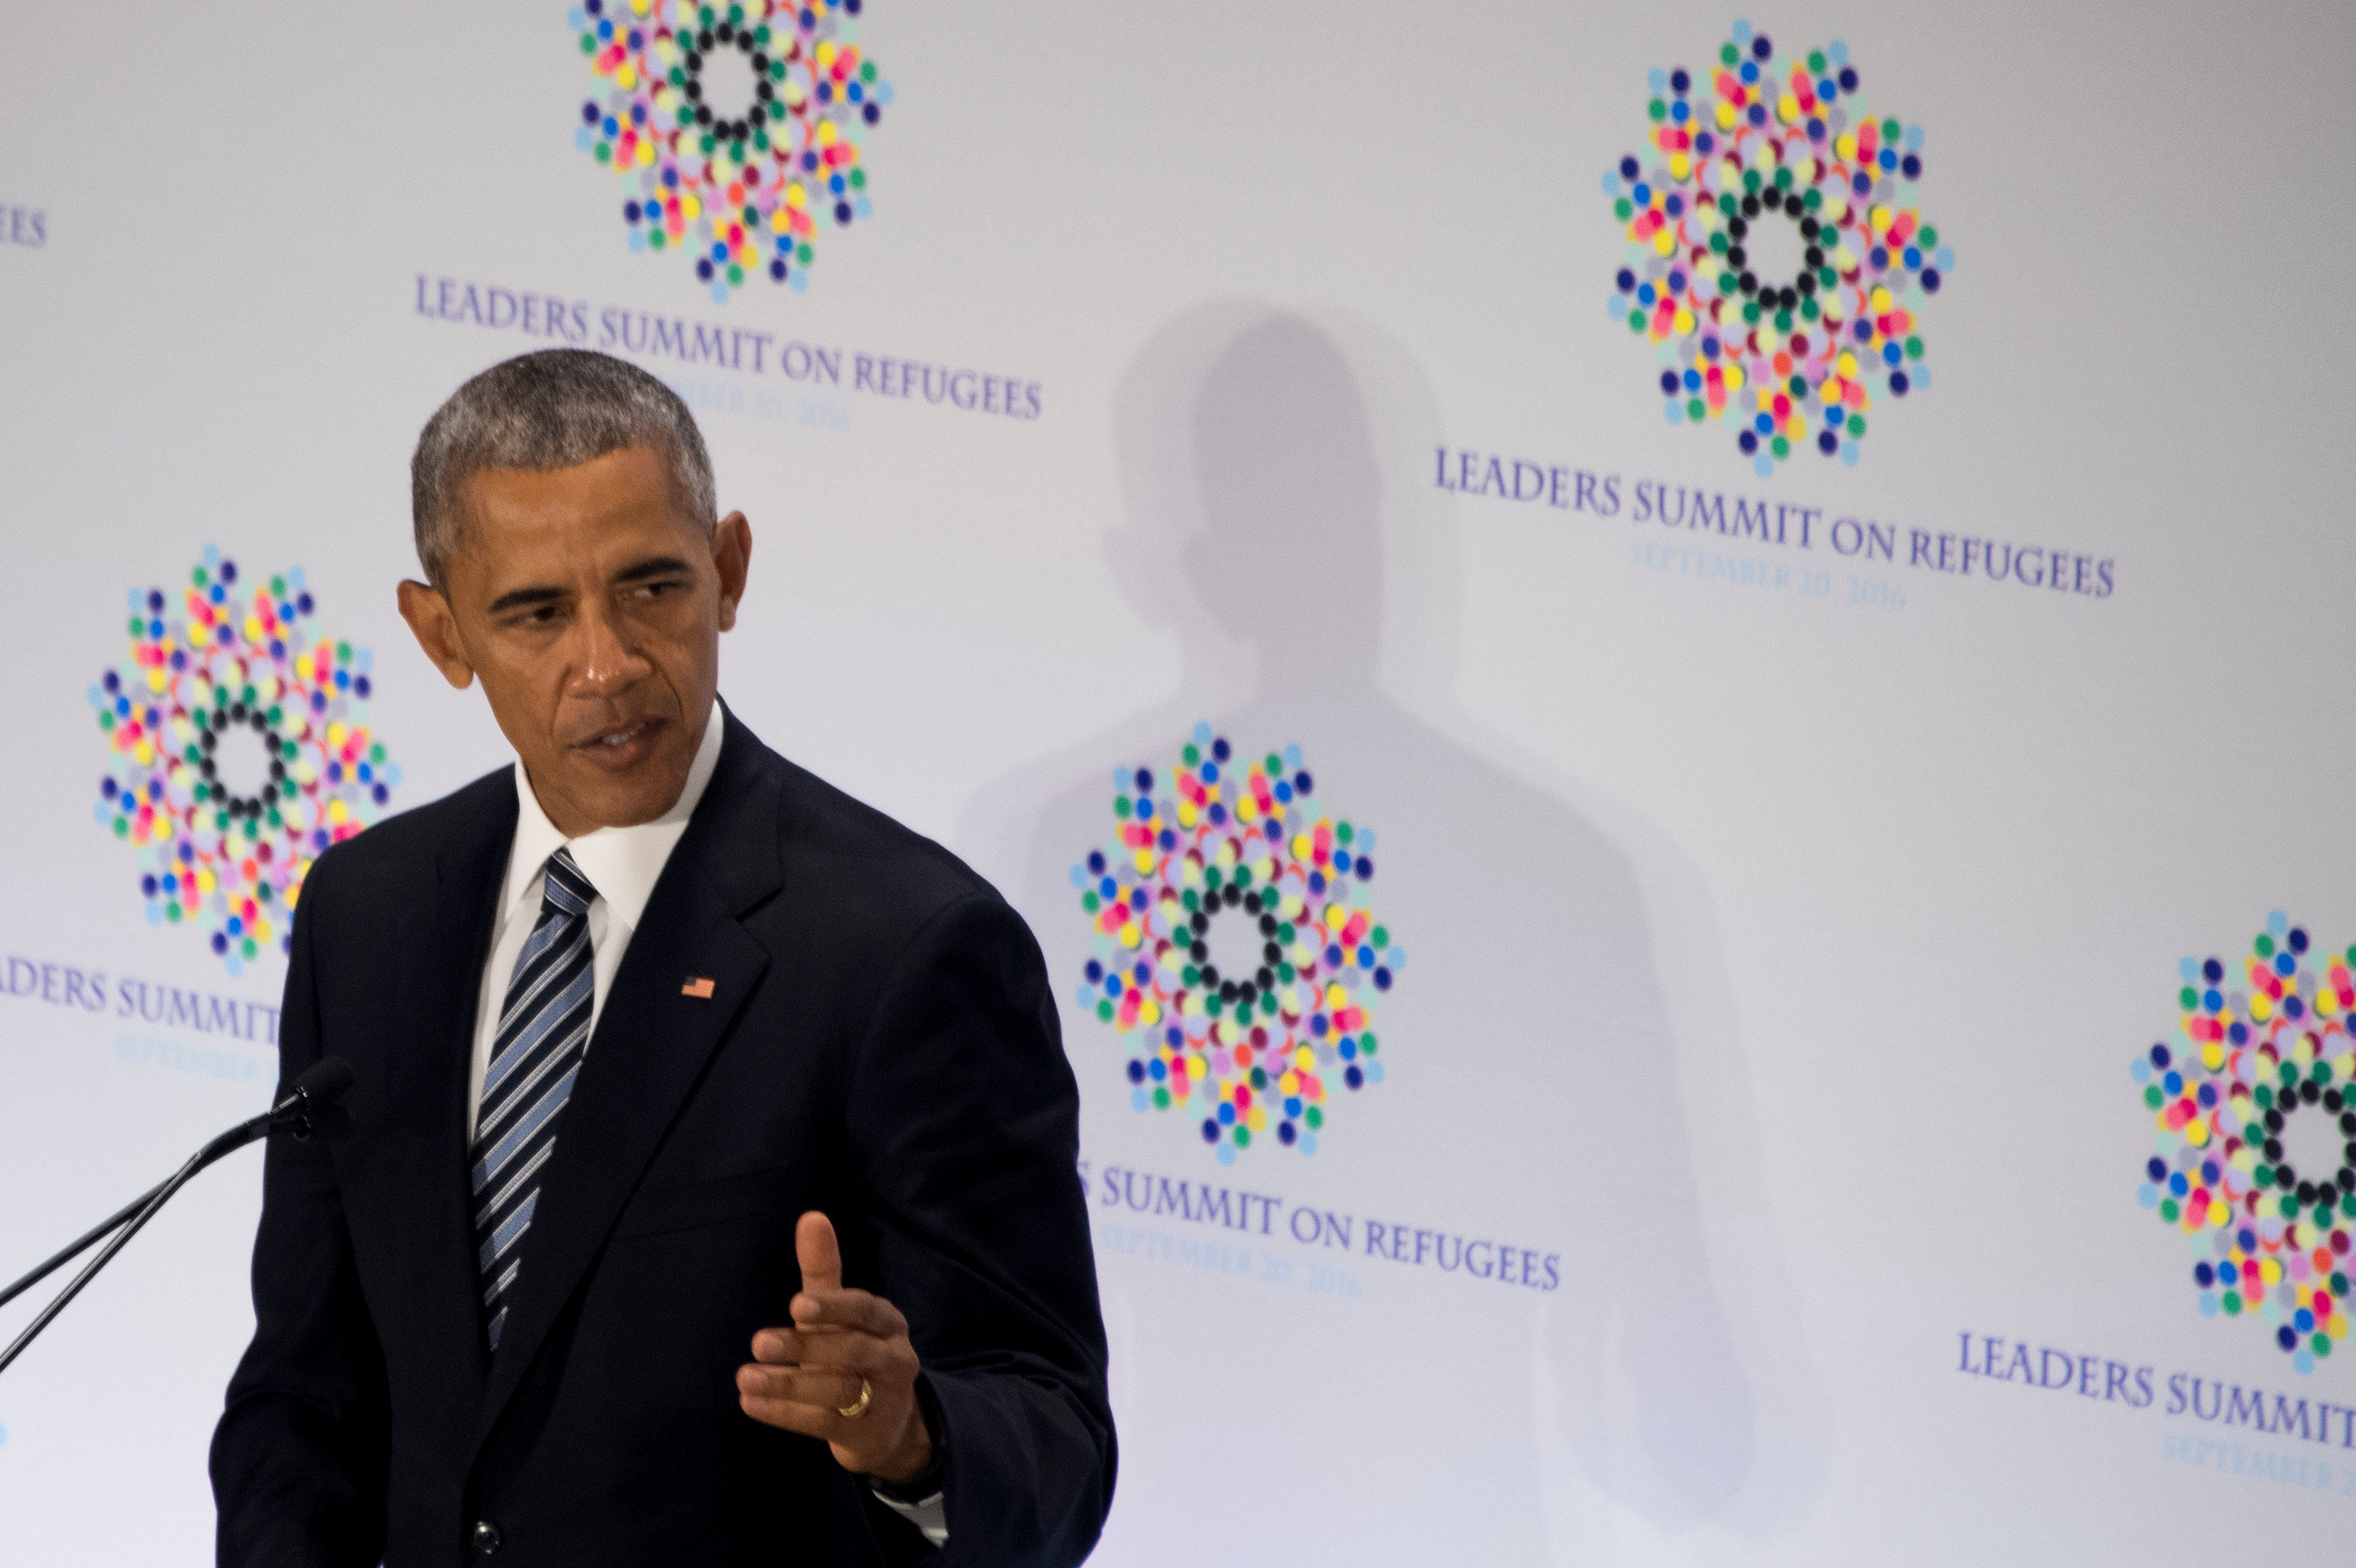 Obama Gathers World Leaders To Pledge Billions In Refugee